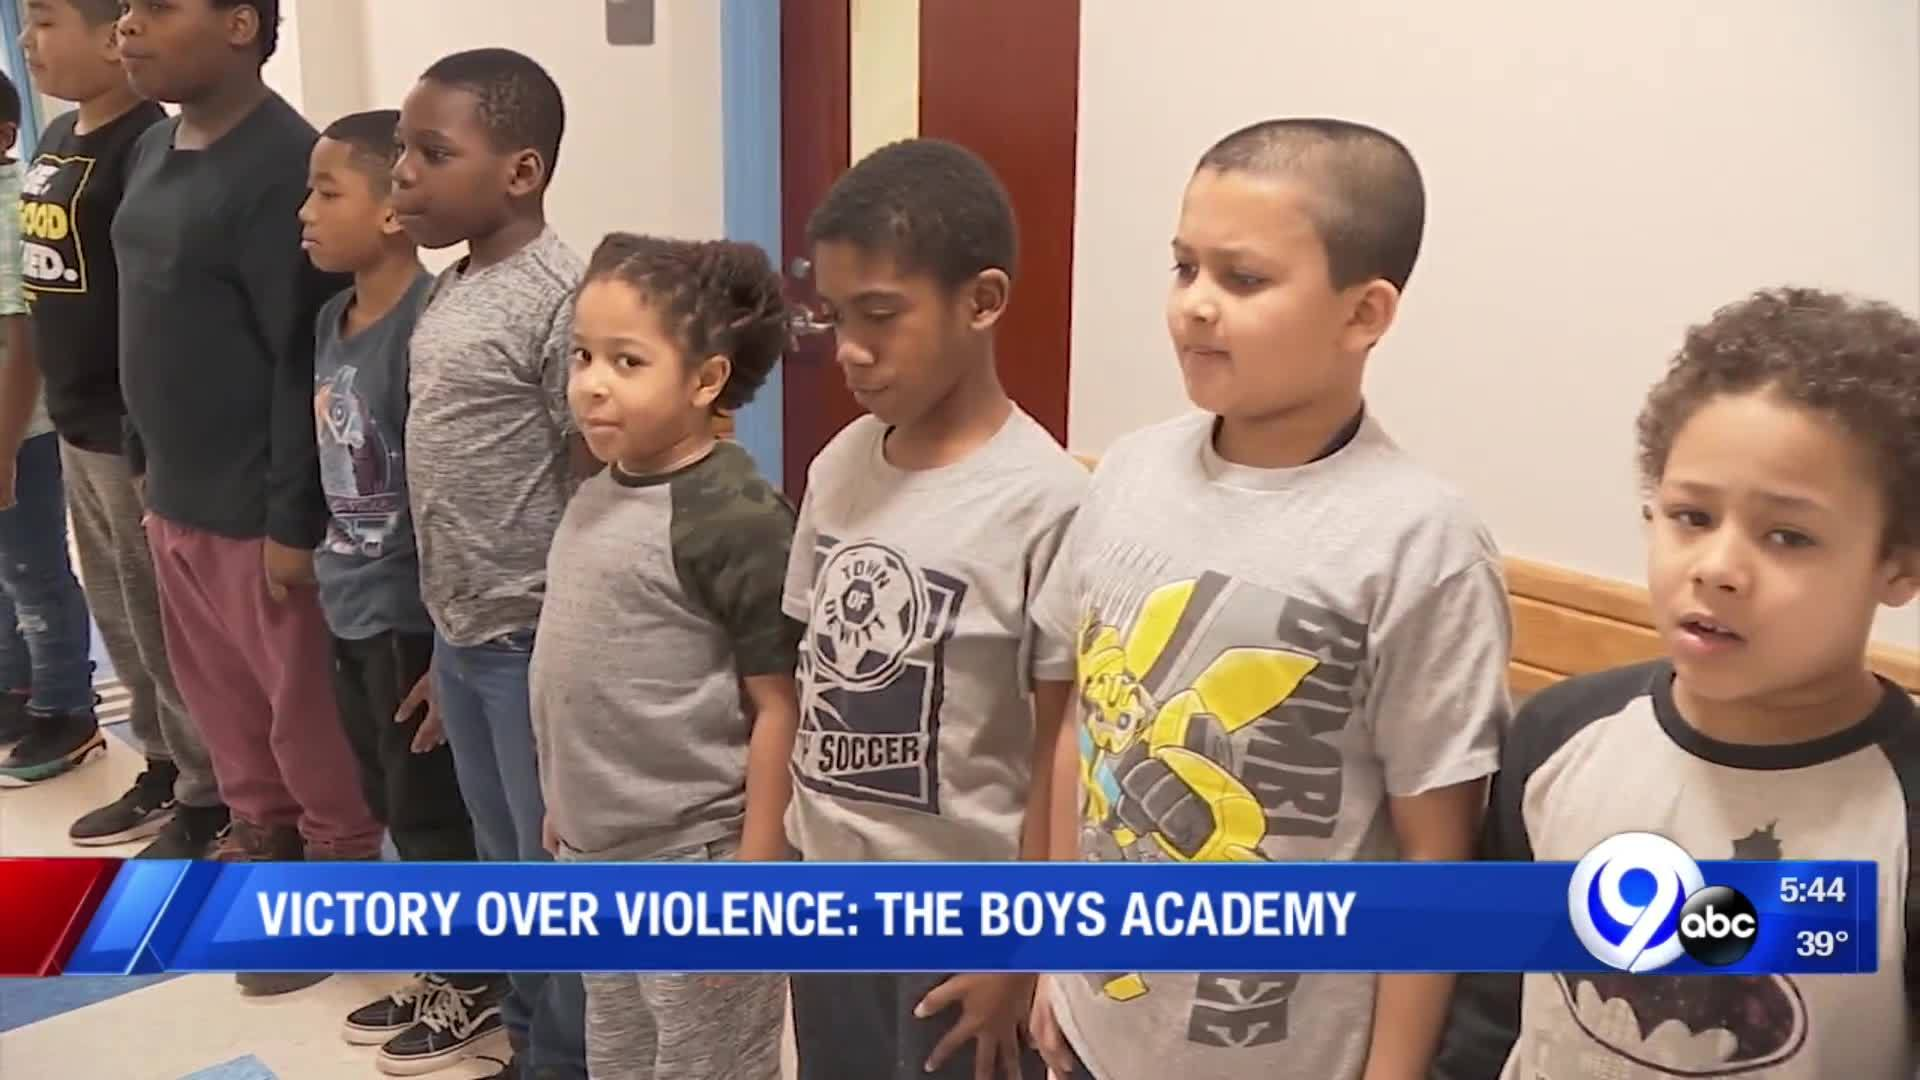 The_Boys_Academy__Victory_Over_Violence_8_20190415223321